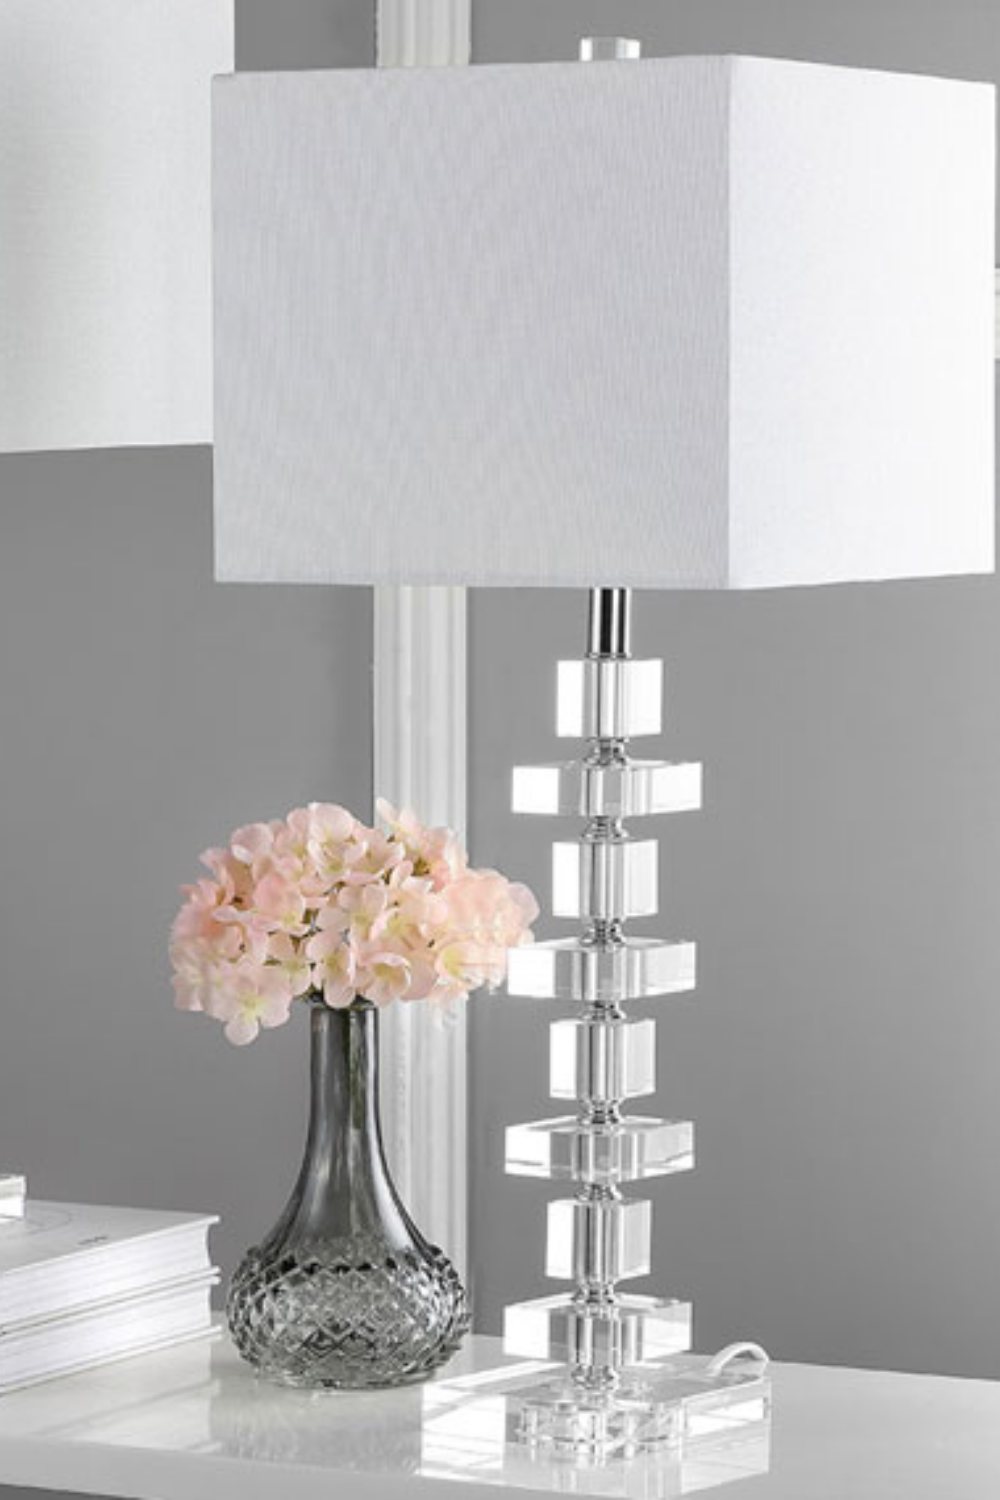 Pin On Table Lamp Inspiration